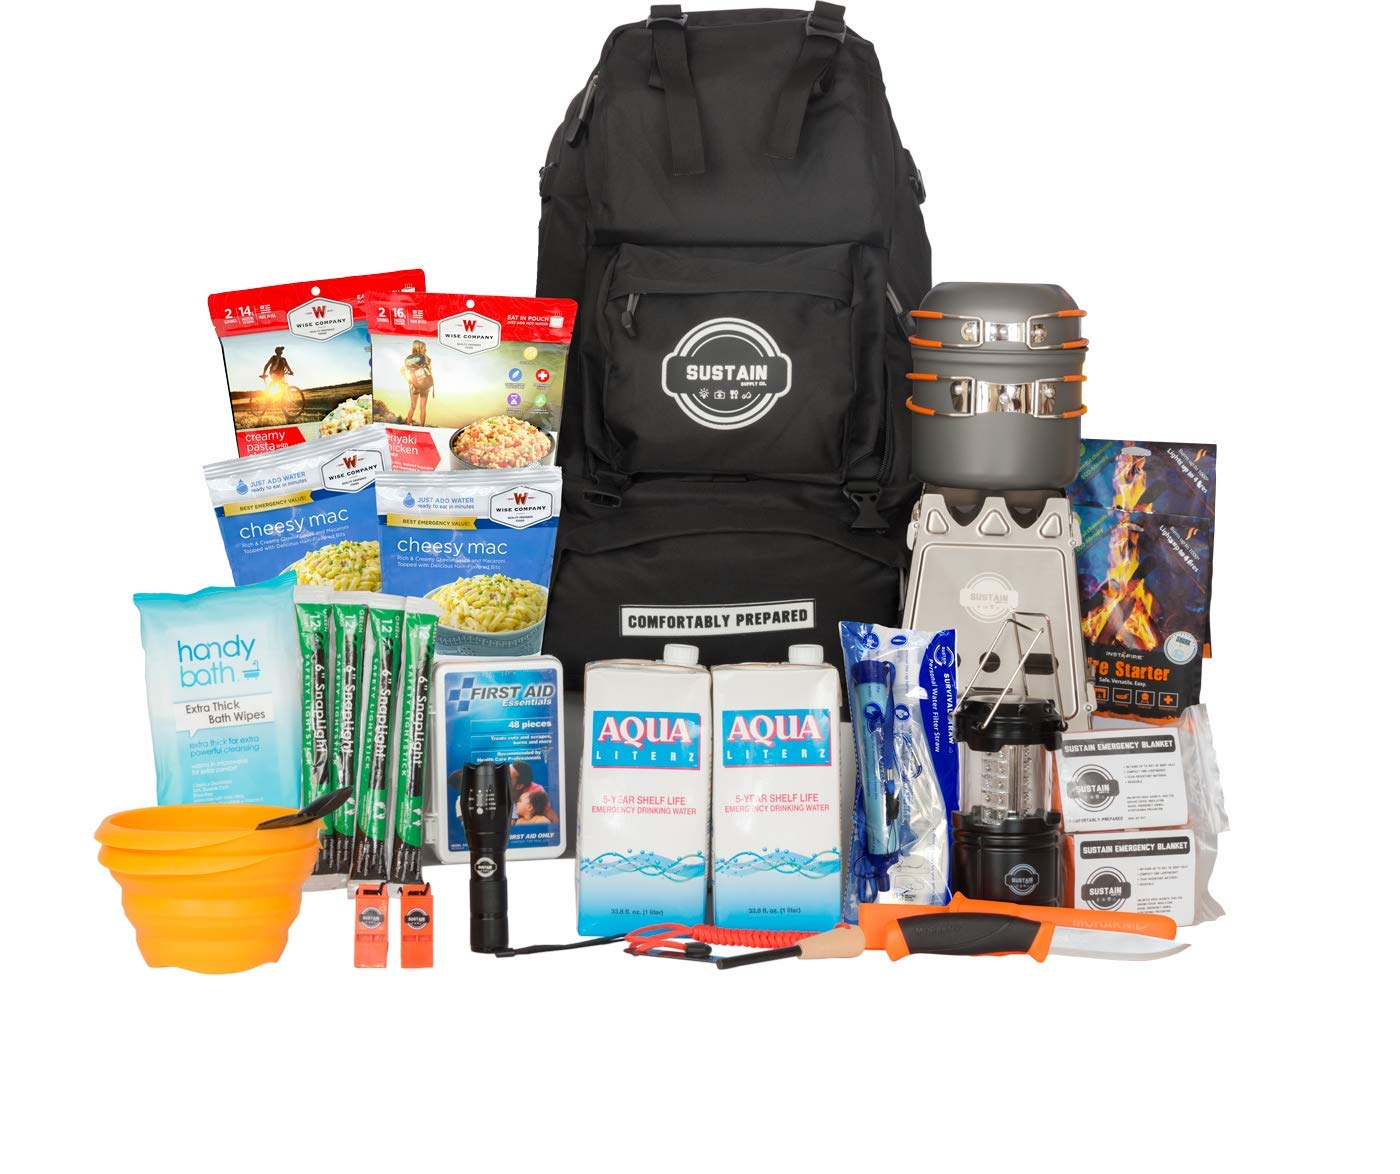 Sustain Supply Co. 9-08400Premium Emergency Survival Bag/Kit - Be Equipped with 72 Hours of Disaster Preparedness Supplies for 2 People by Sustain Supply Co.